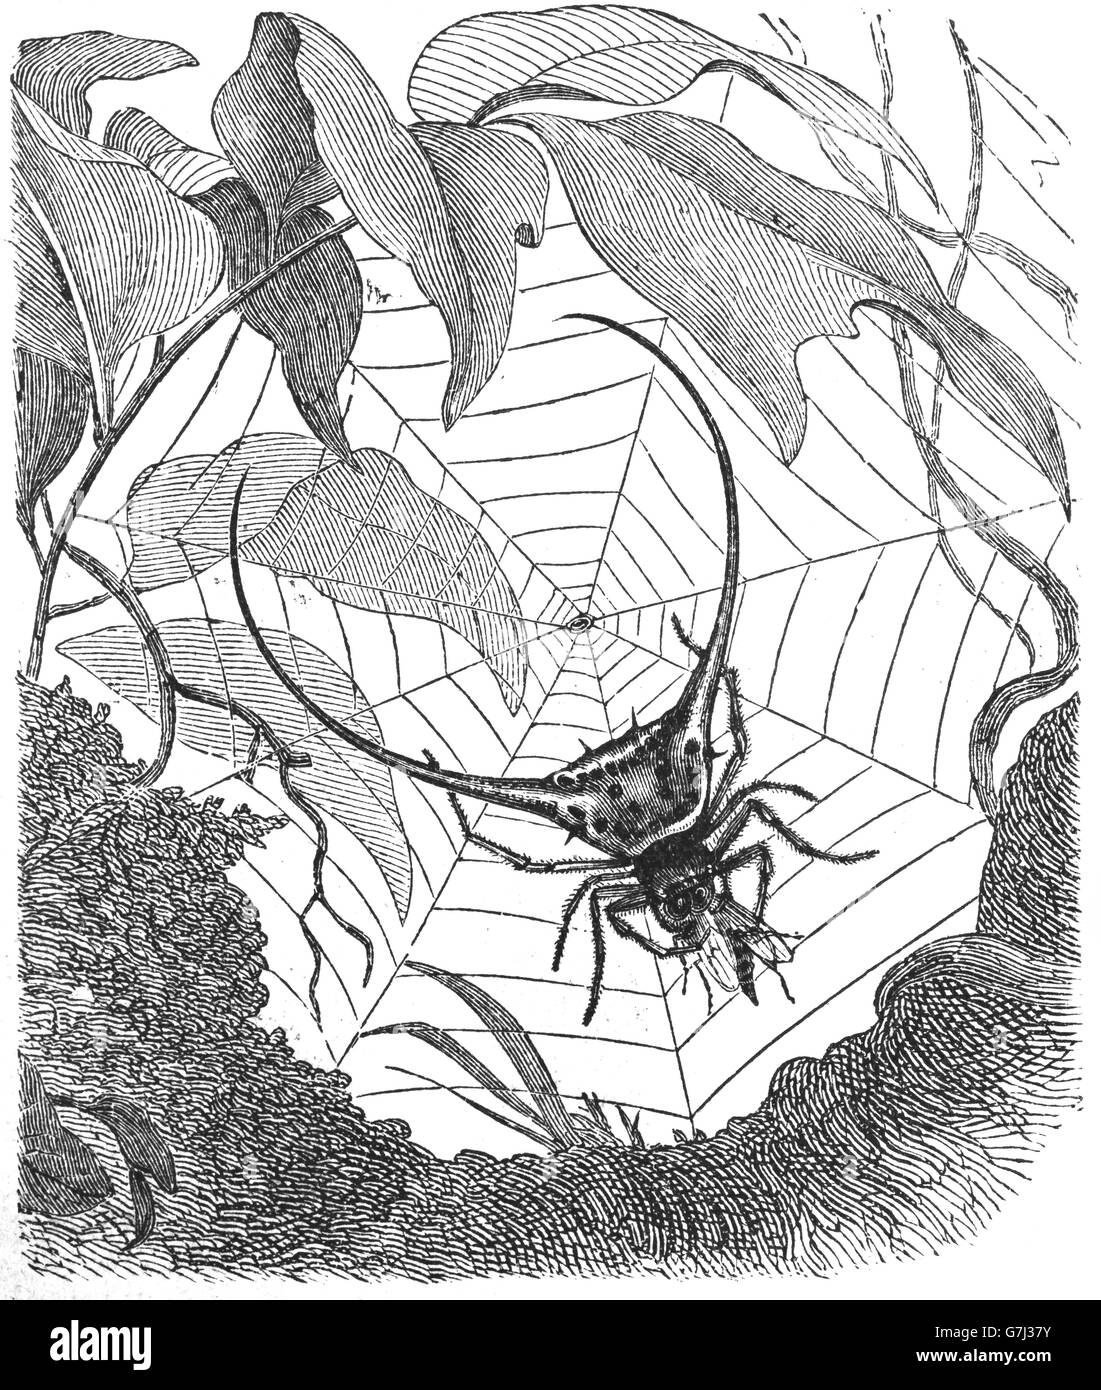 Gasteracantha arcuata, Curved spiny spider, Gasteracantha, illustration from book dated 1904 - Stock Image